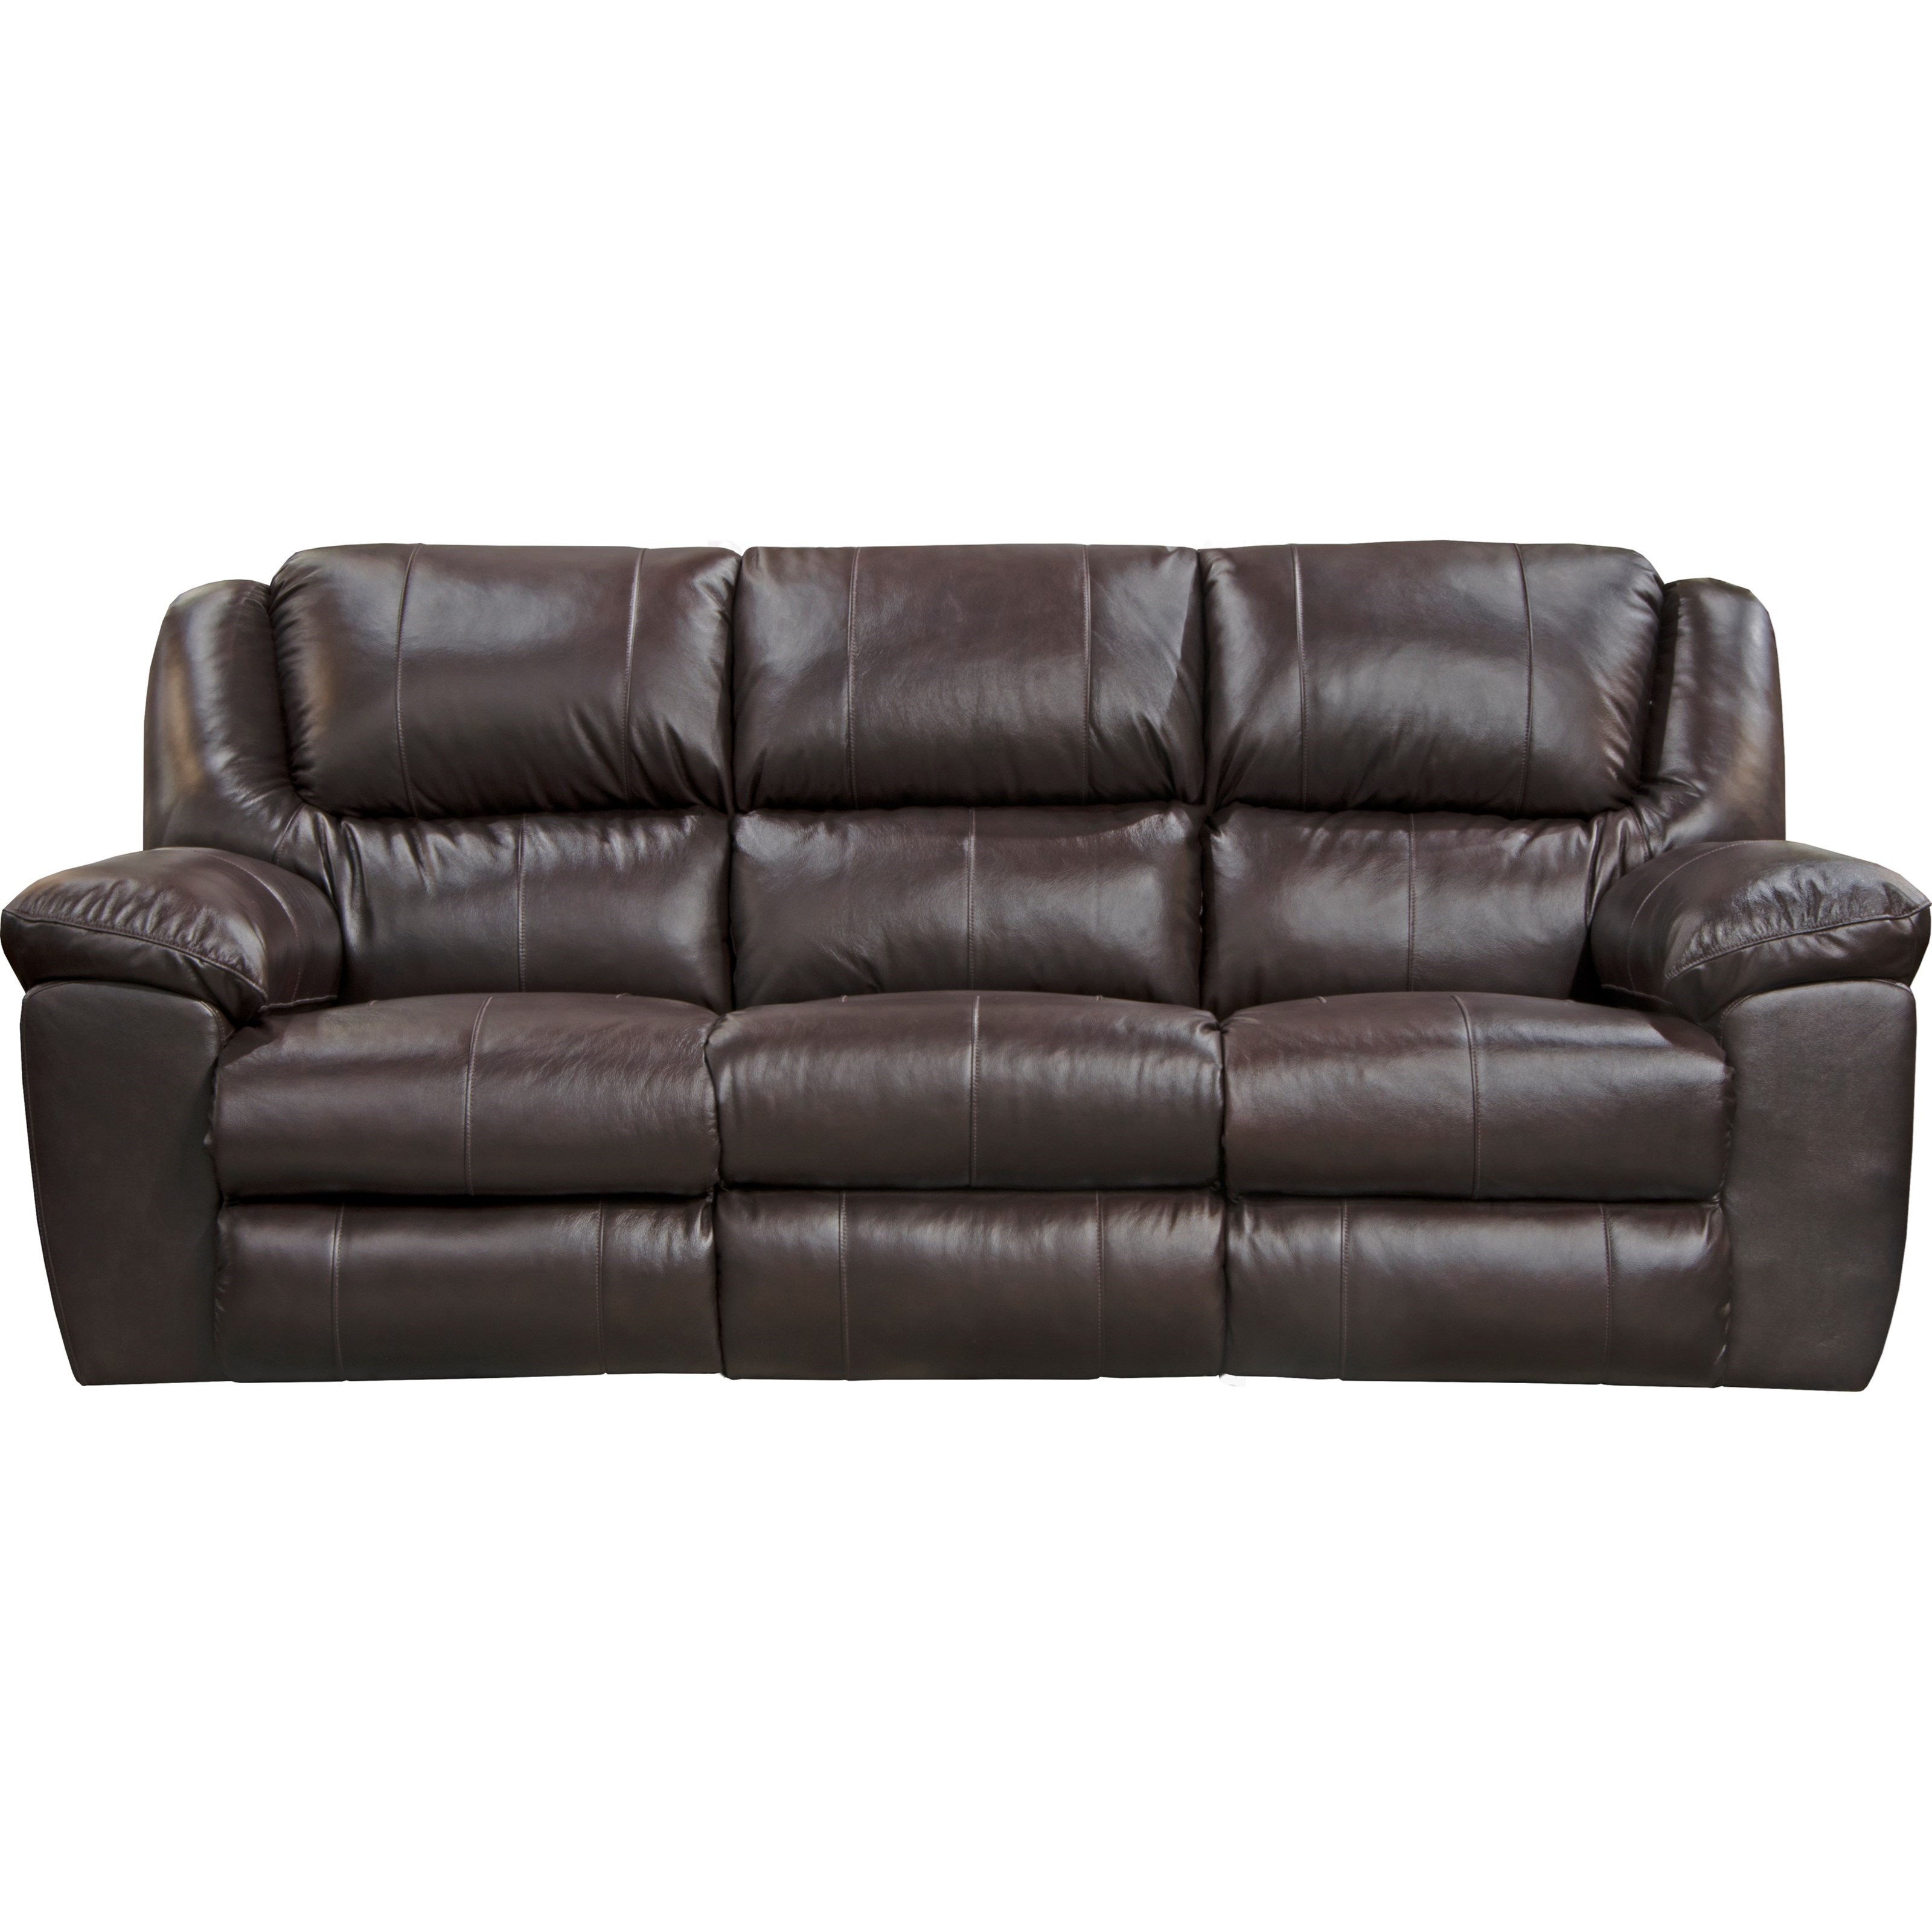 catnapper sofa and loveseat leather office furniture transformer ii ultimate with 3 recliners